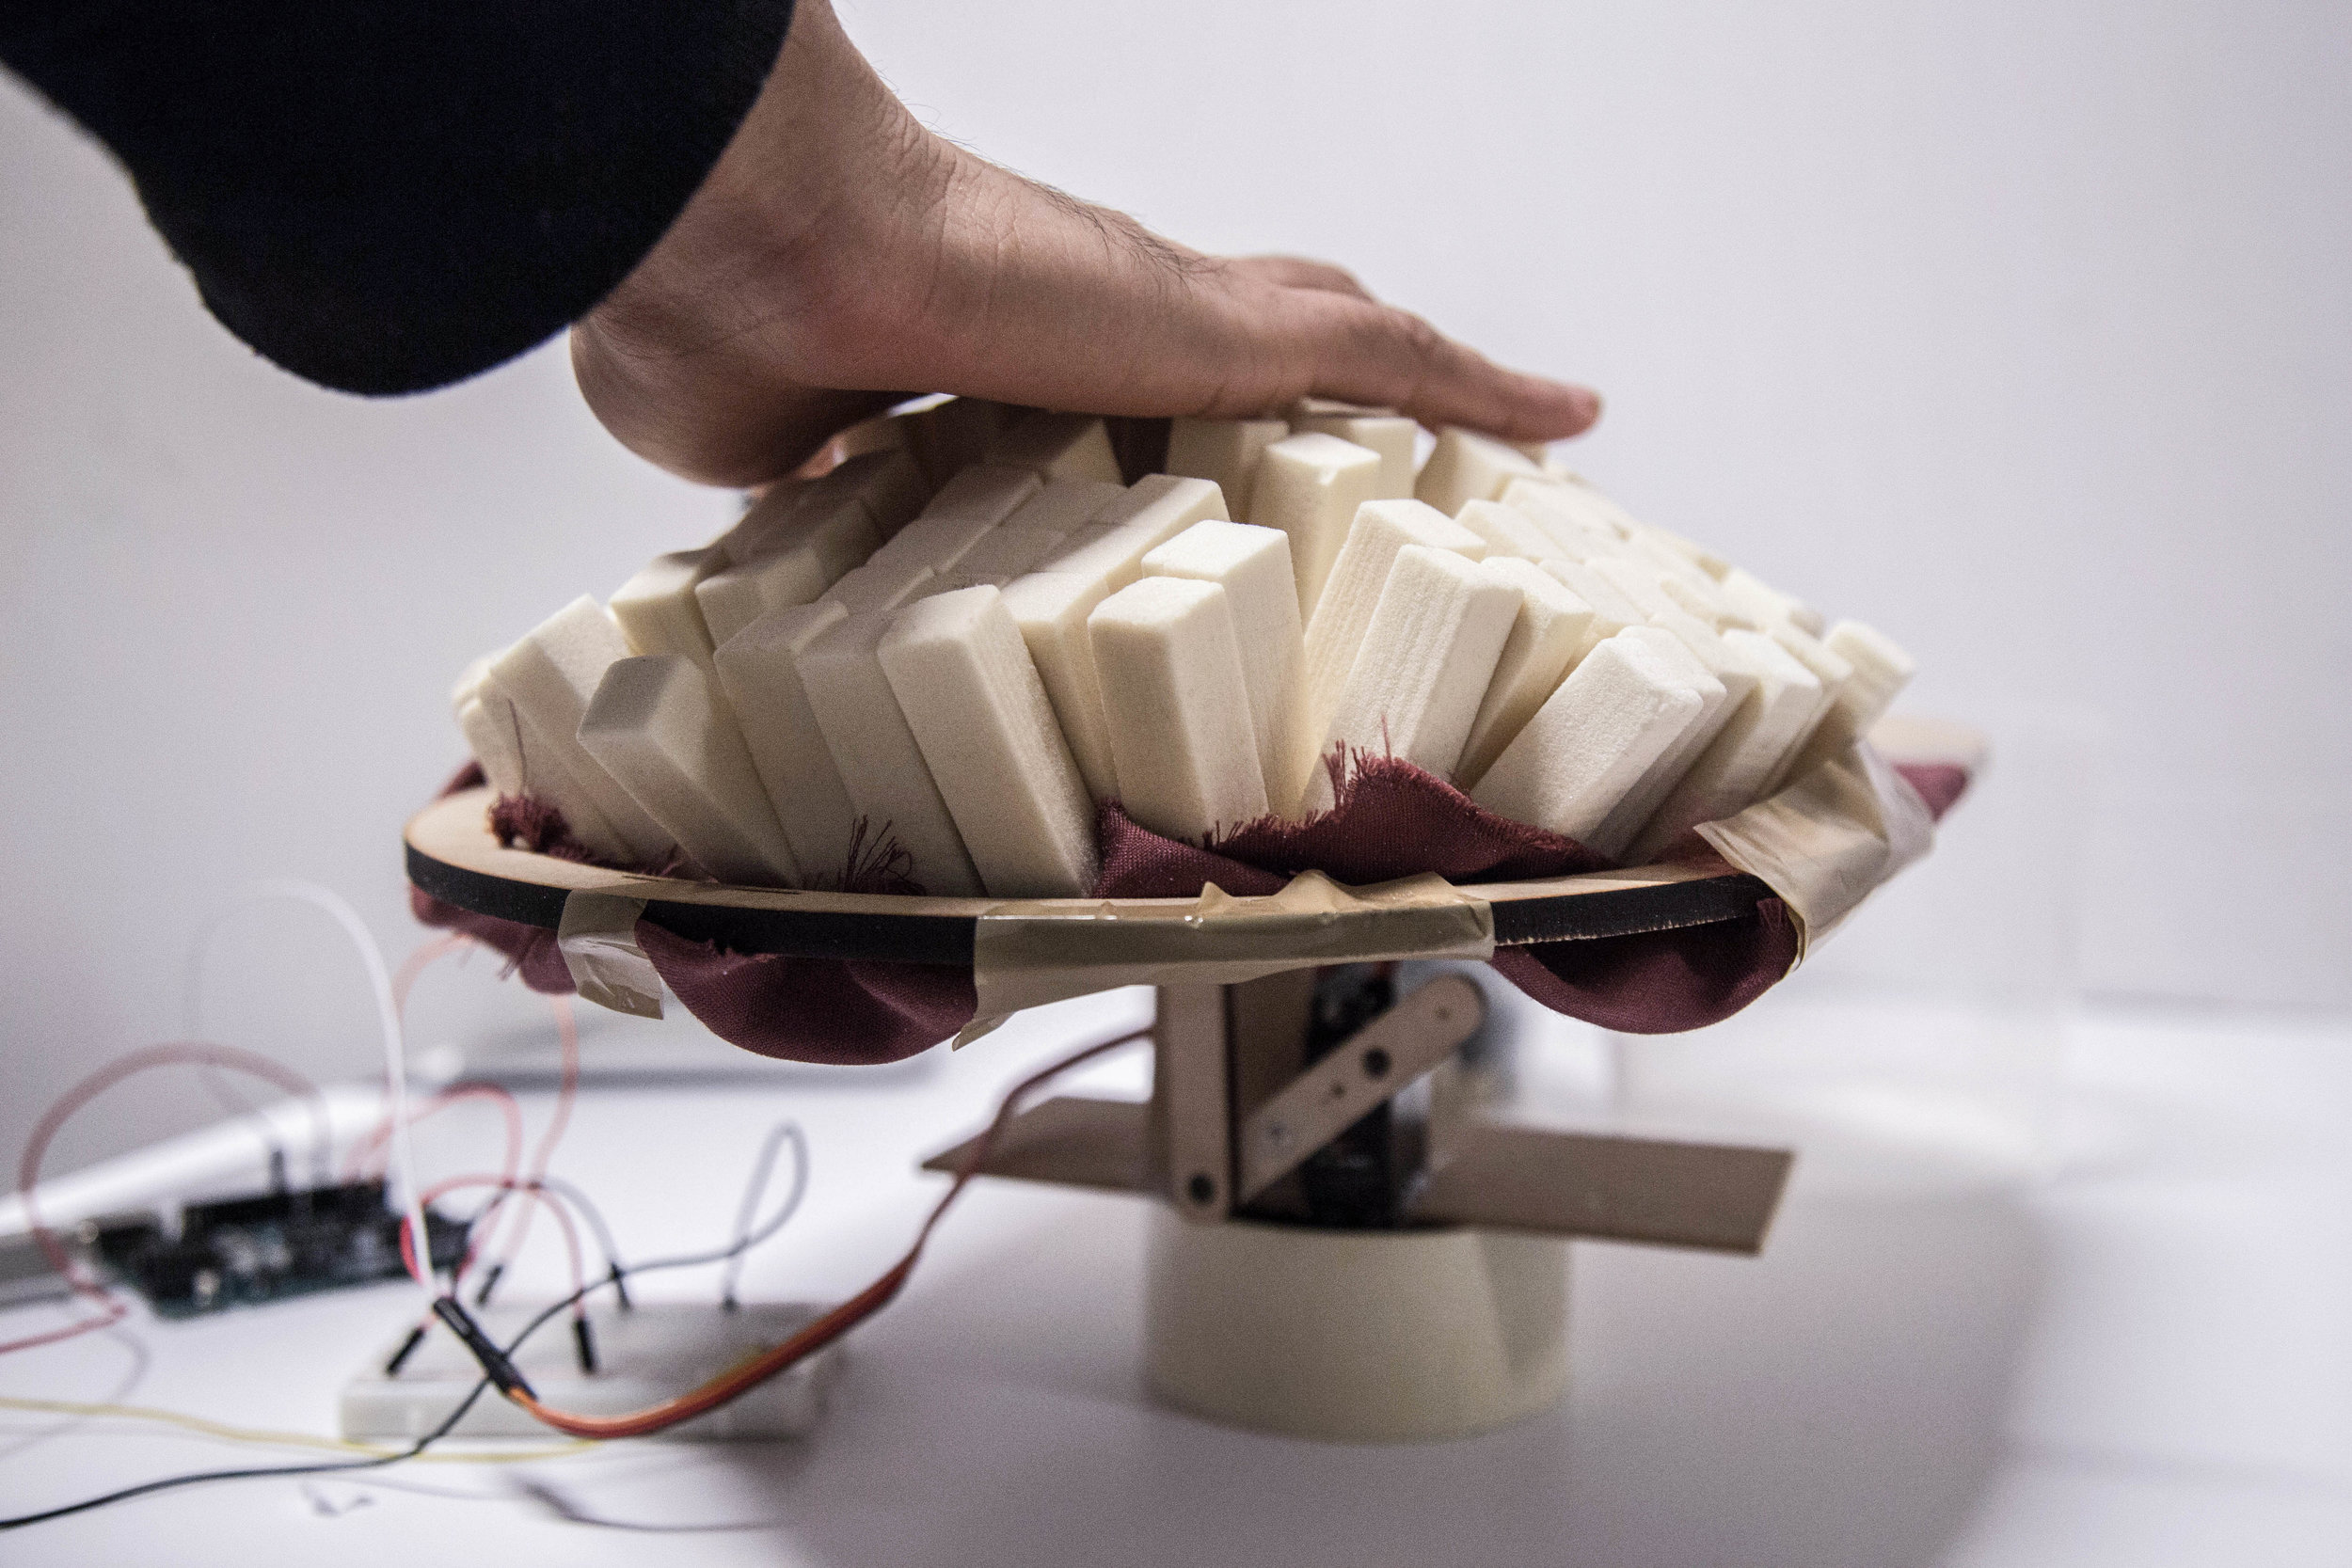 Aero° tangible hybrid - Using hand as an interface between mind and the material